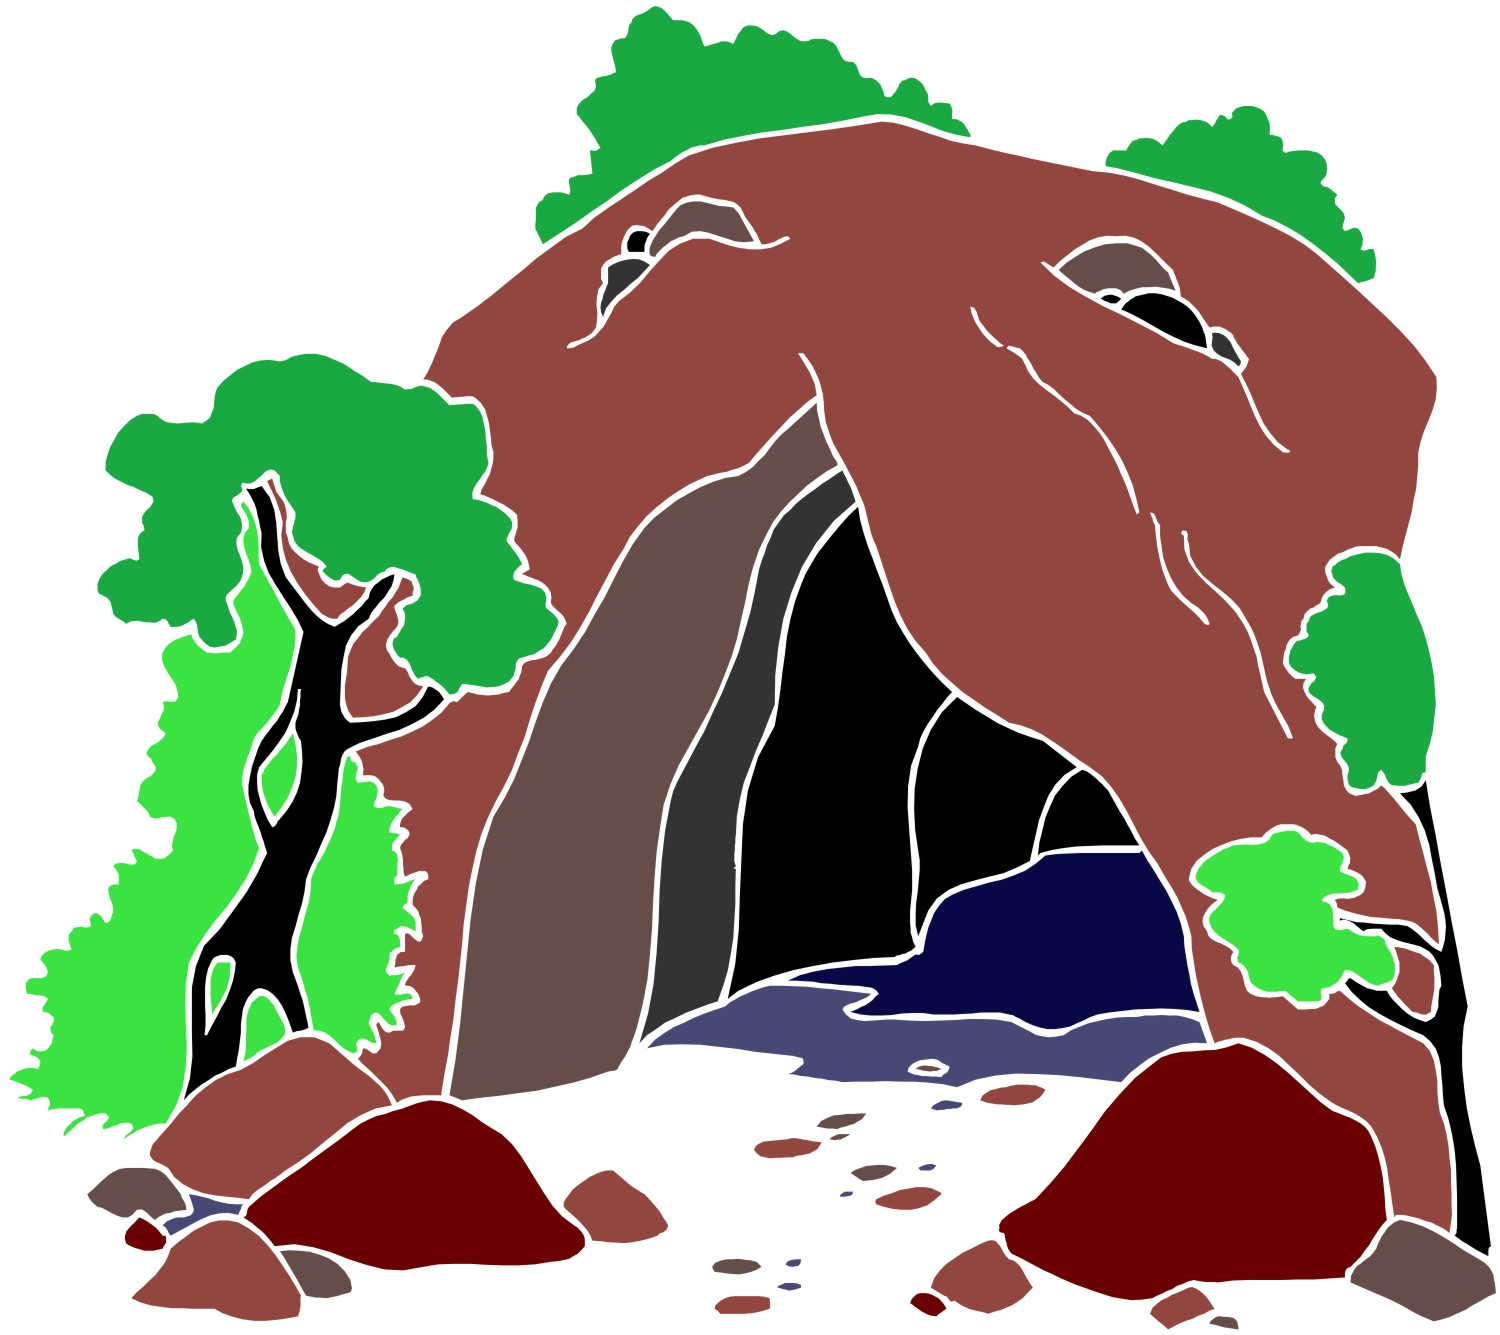 Cavern clipart claustrophobia Cave Images Clipart Clip Free